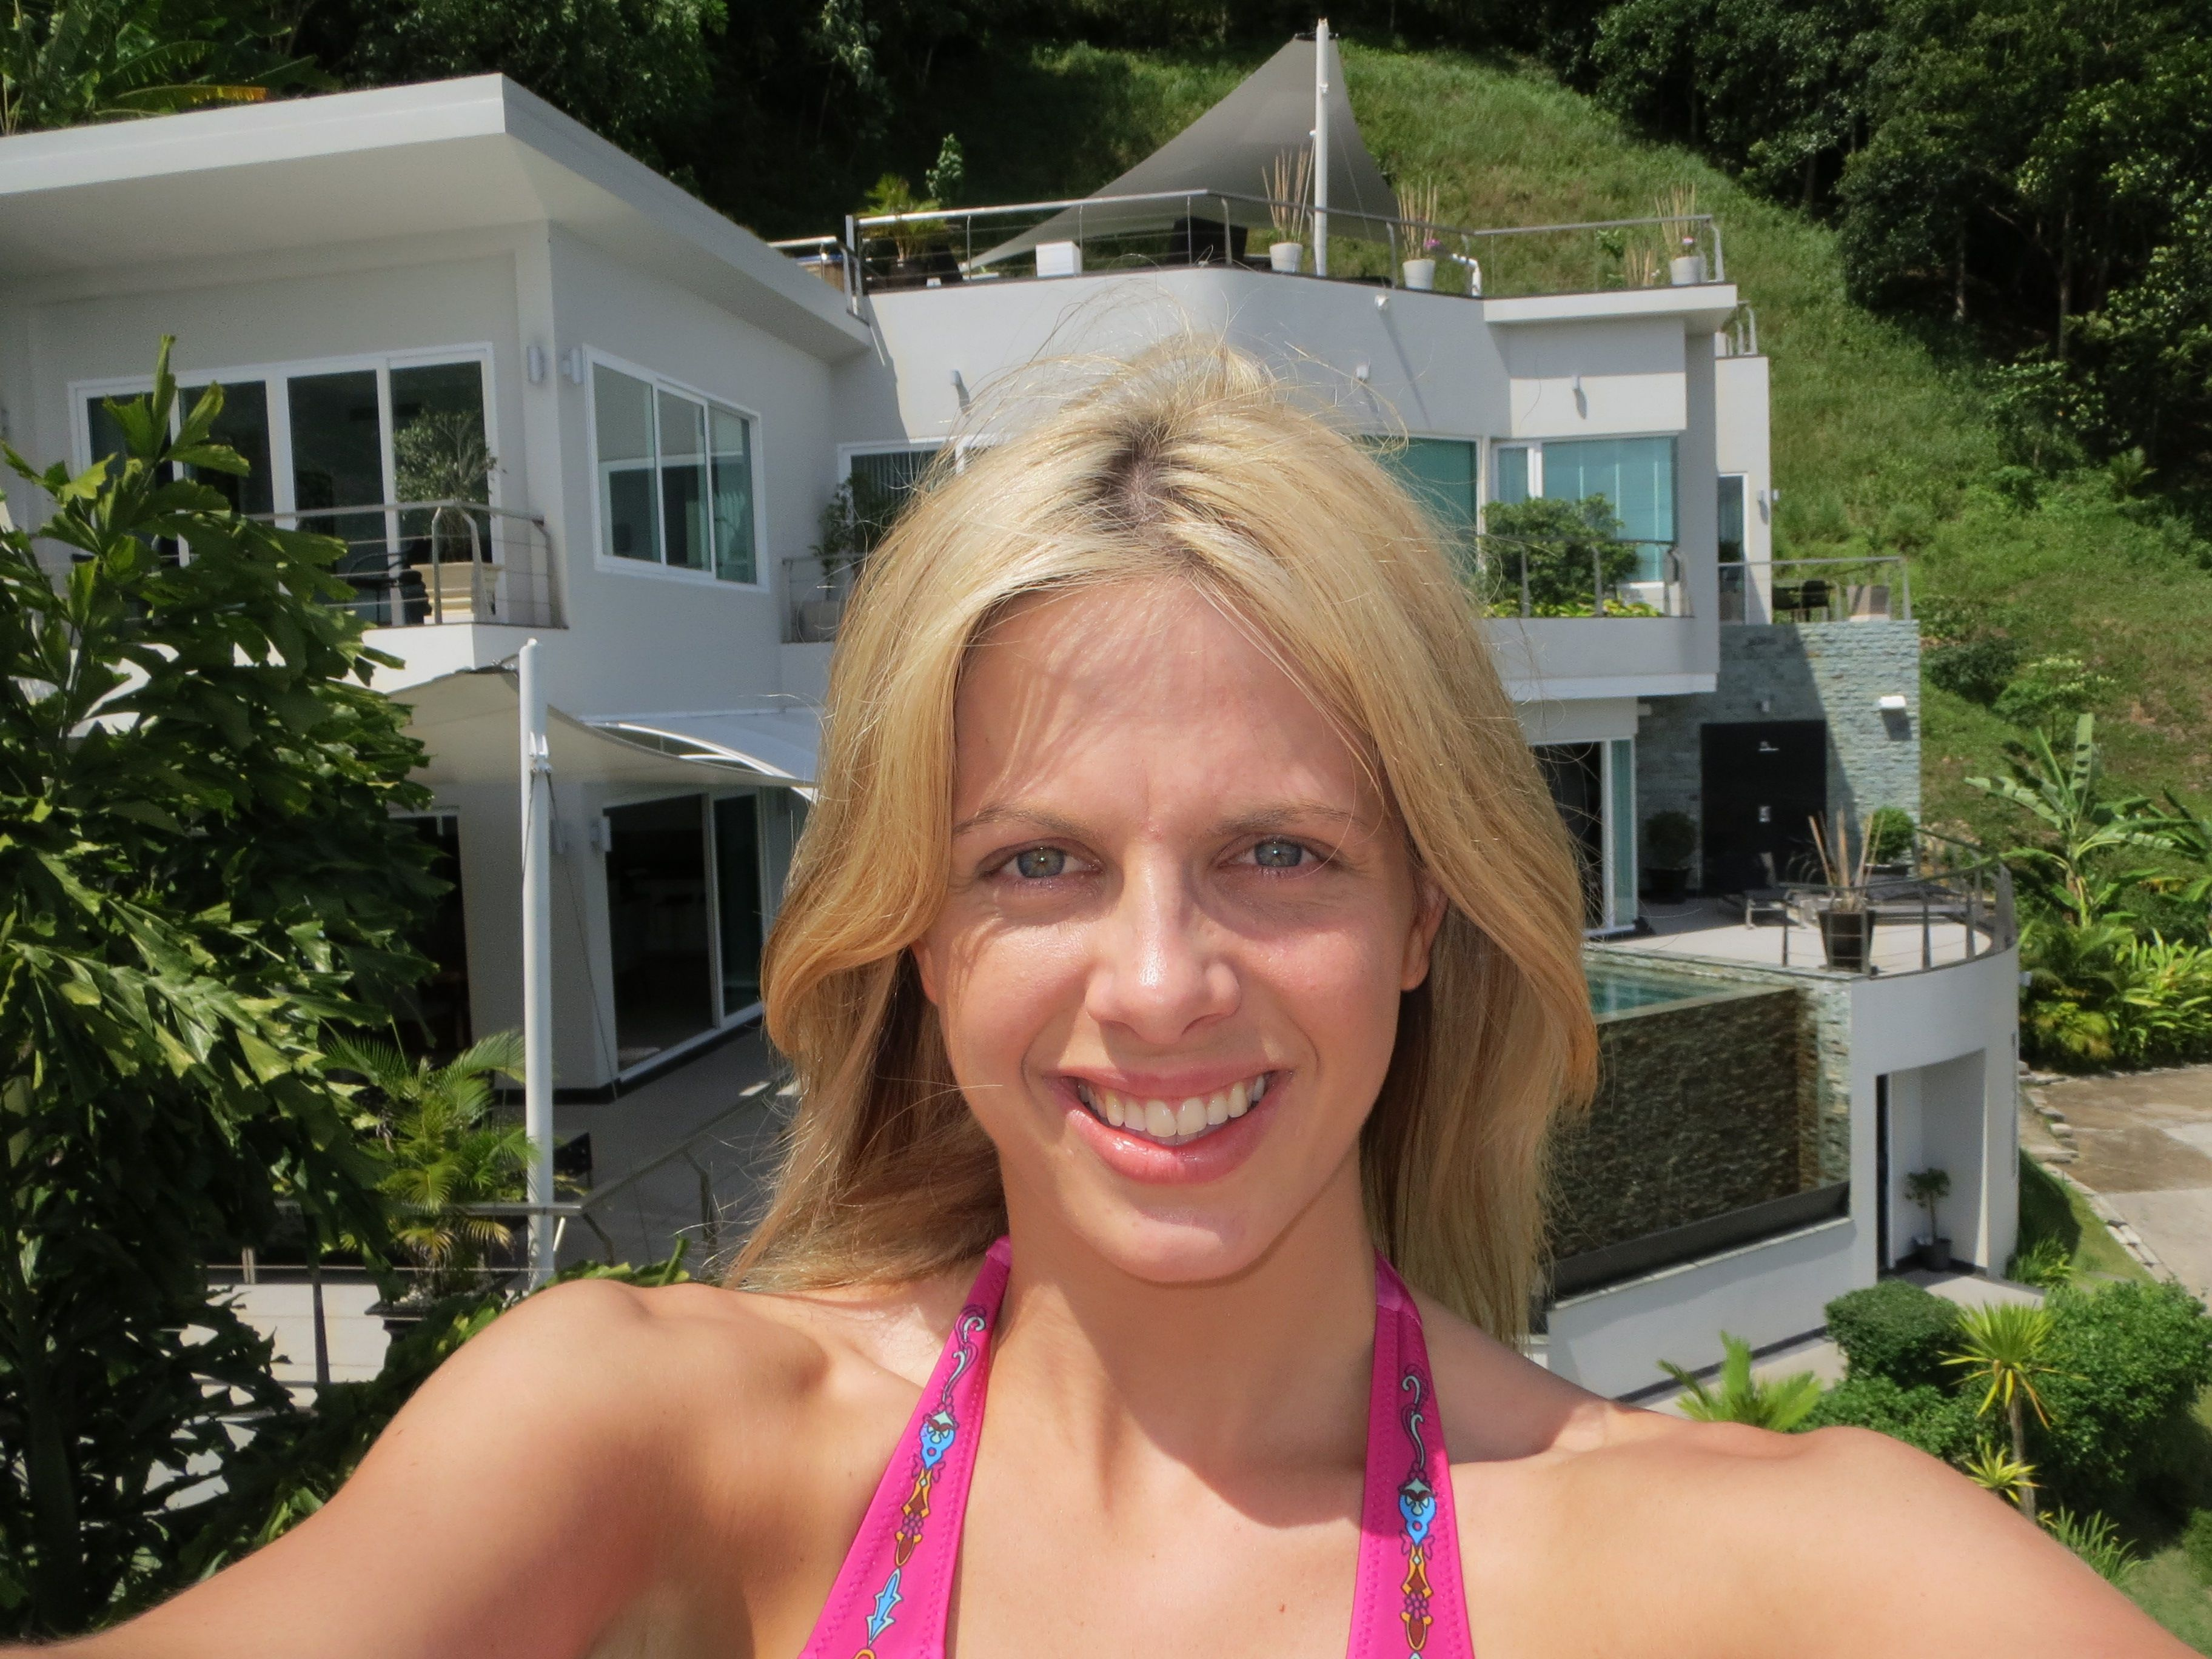 … don't mind the blond hair haha   A few of the crazy houses I lived in during 2013  www.oneadventureatatime.com